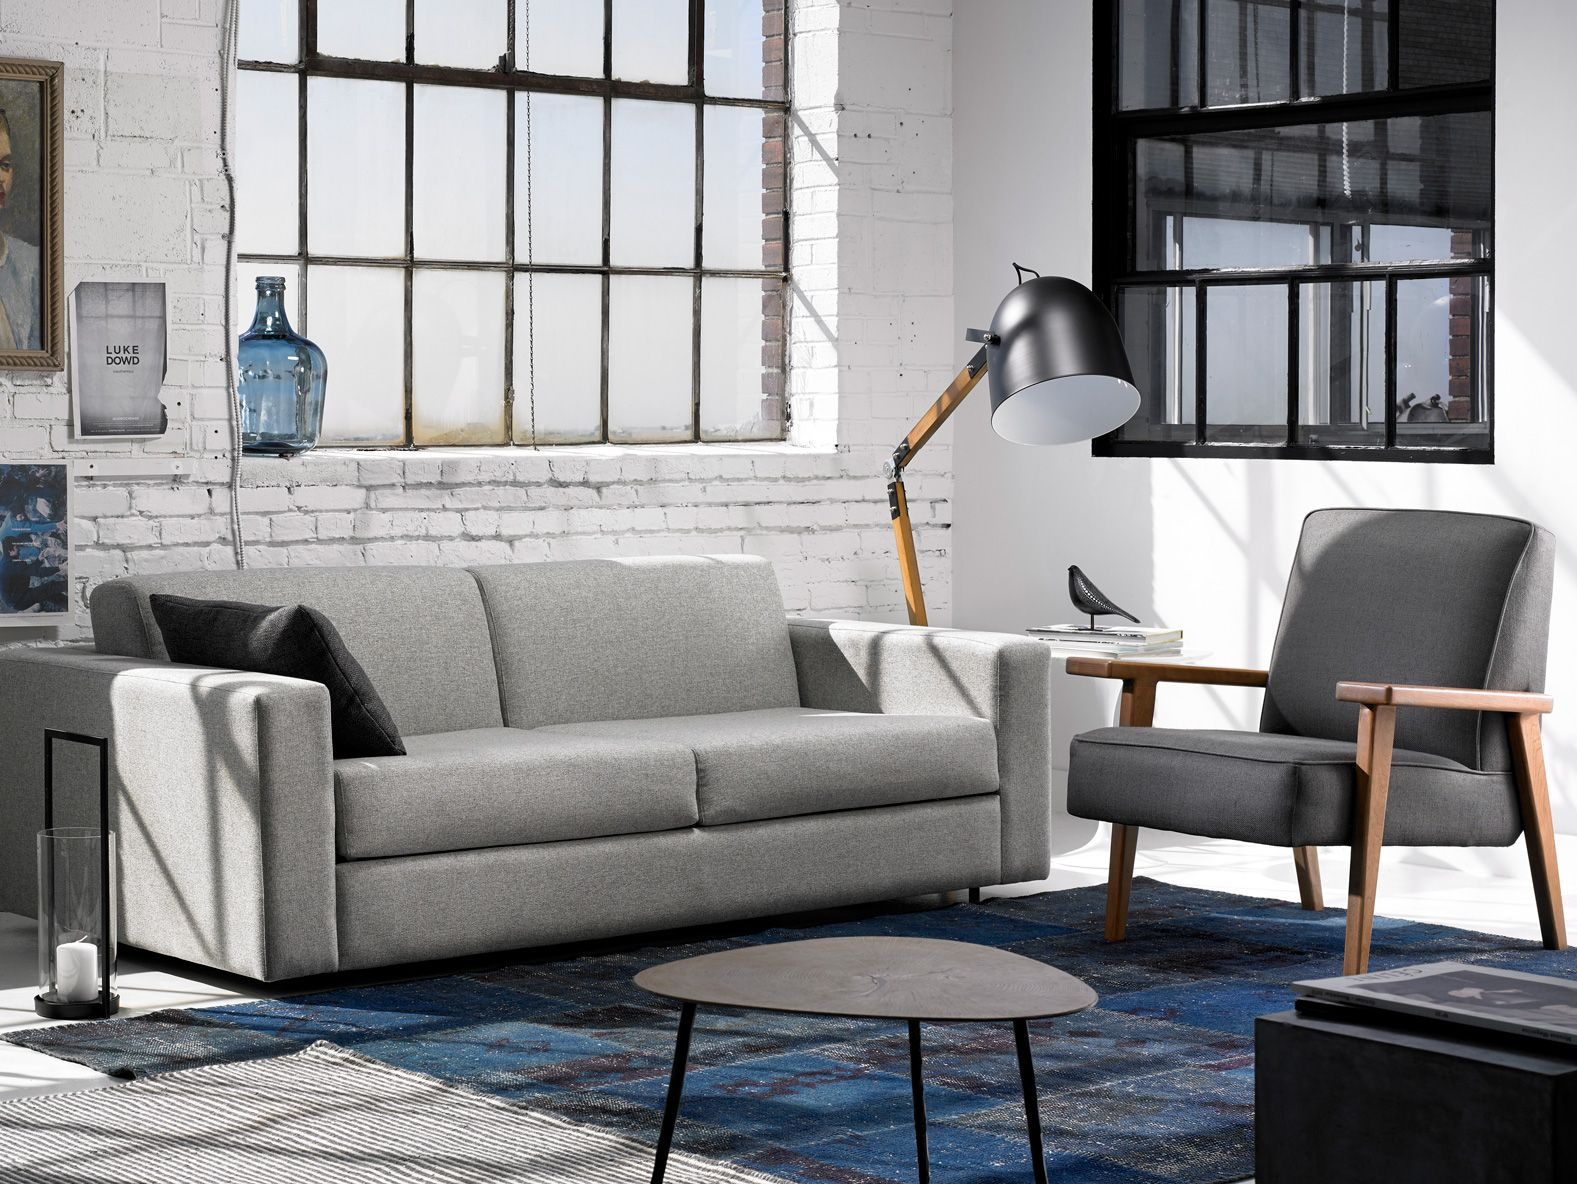 Schlafsofa York Luna Sofa Bed And York Chair By G Romano In Montreal Made To